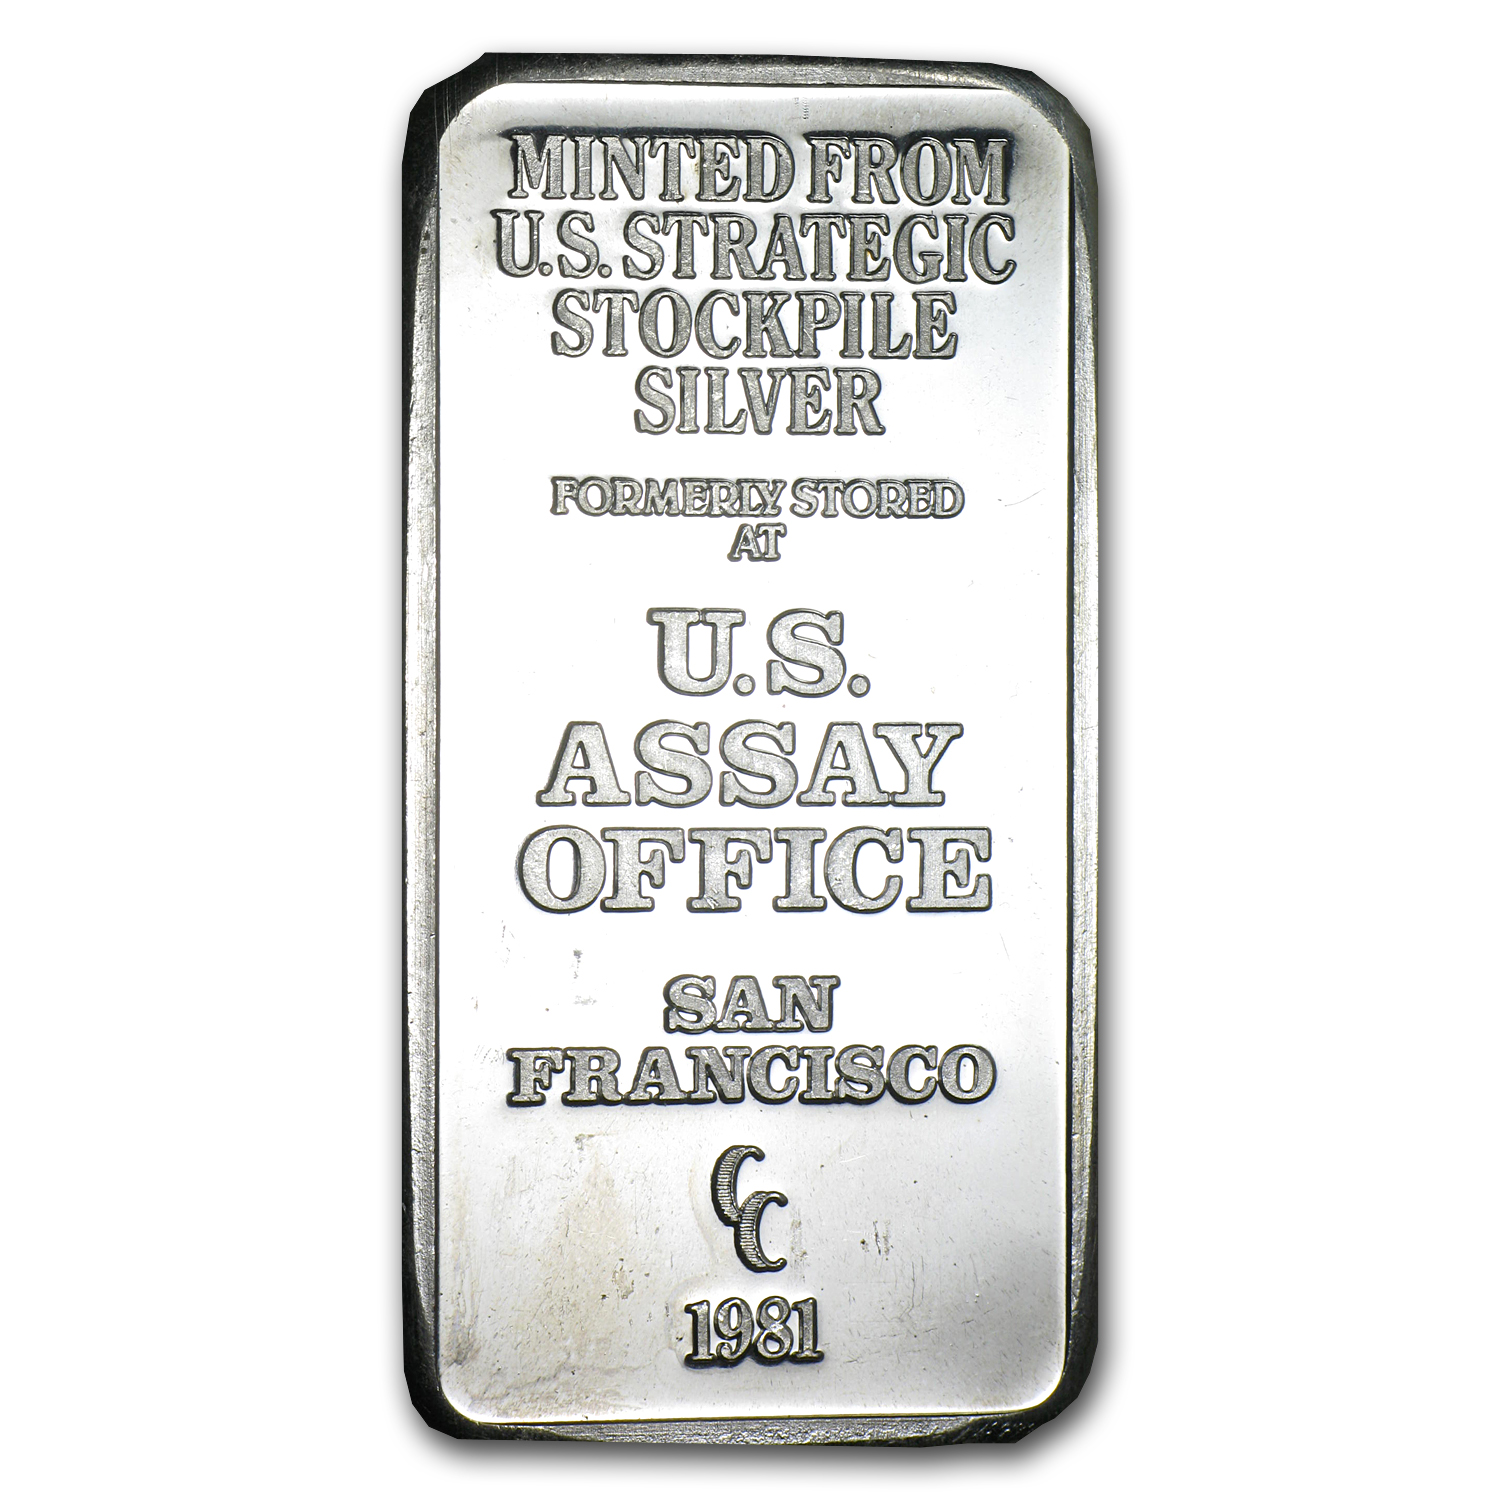 5 oz Silver Bar - U.S. Assay Office